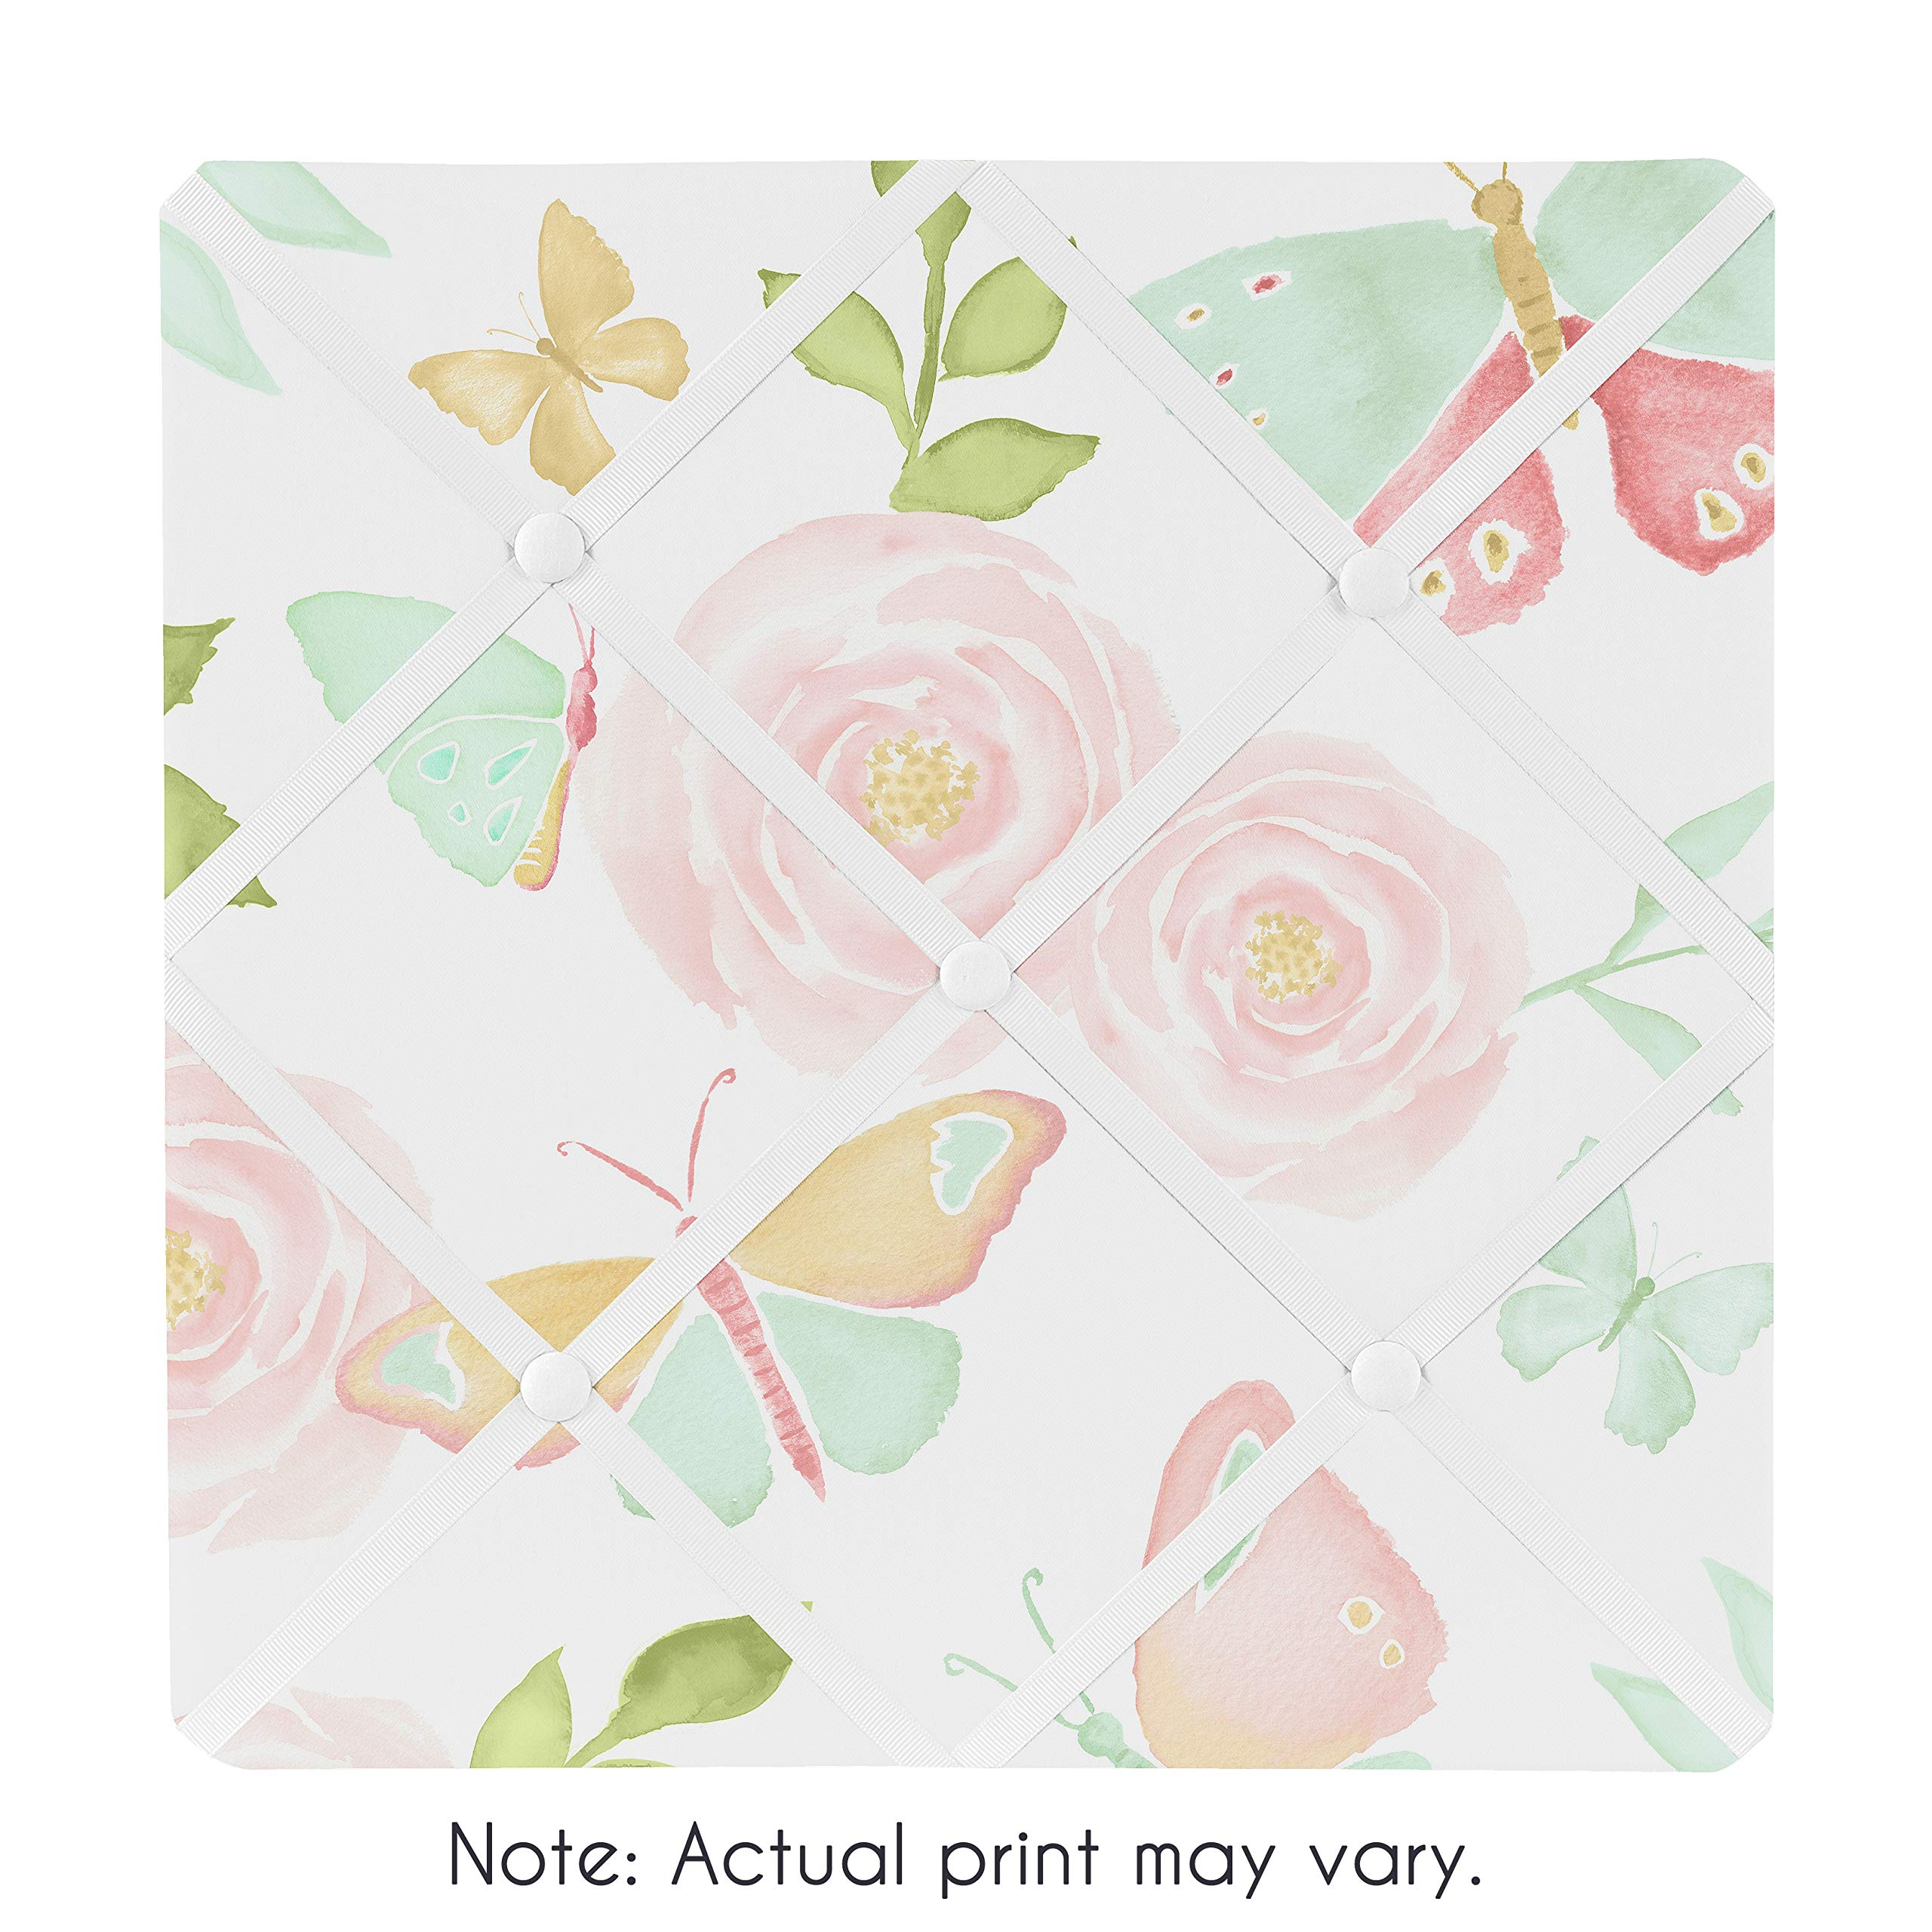 Sweet Jojo Designs Blush Pink, Mint and White Watercolor Rose Fabric Memory Memo Photo Bulletin Board for Butterfly Floral Collection by Sweet Jojo Designs